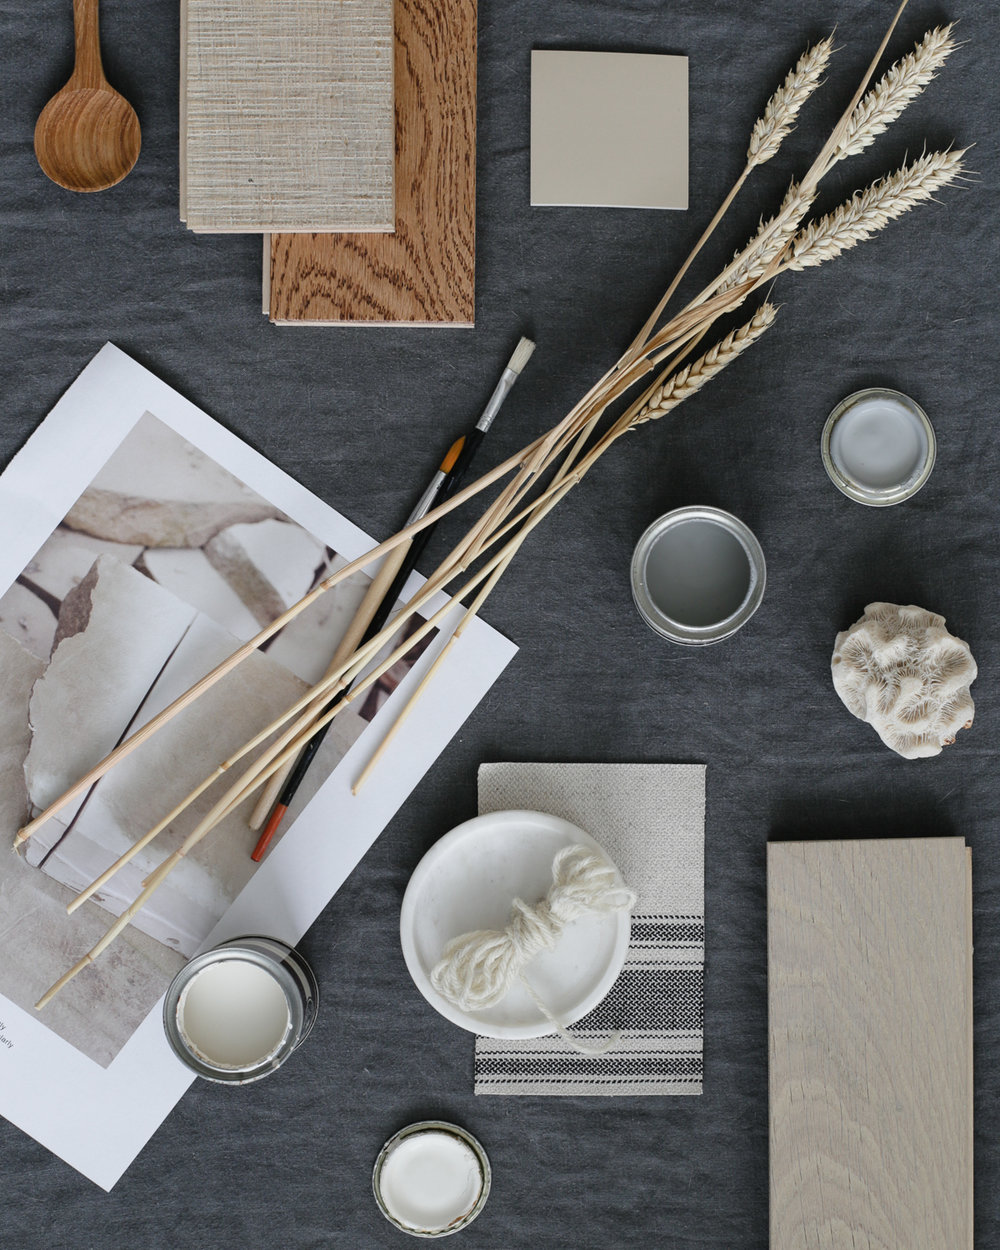 Modern rustic interiors moodboard | Design Hunter